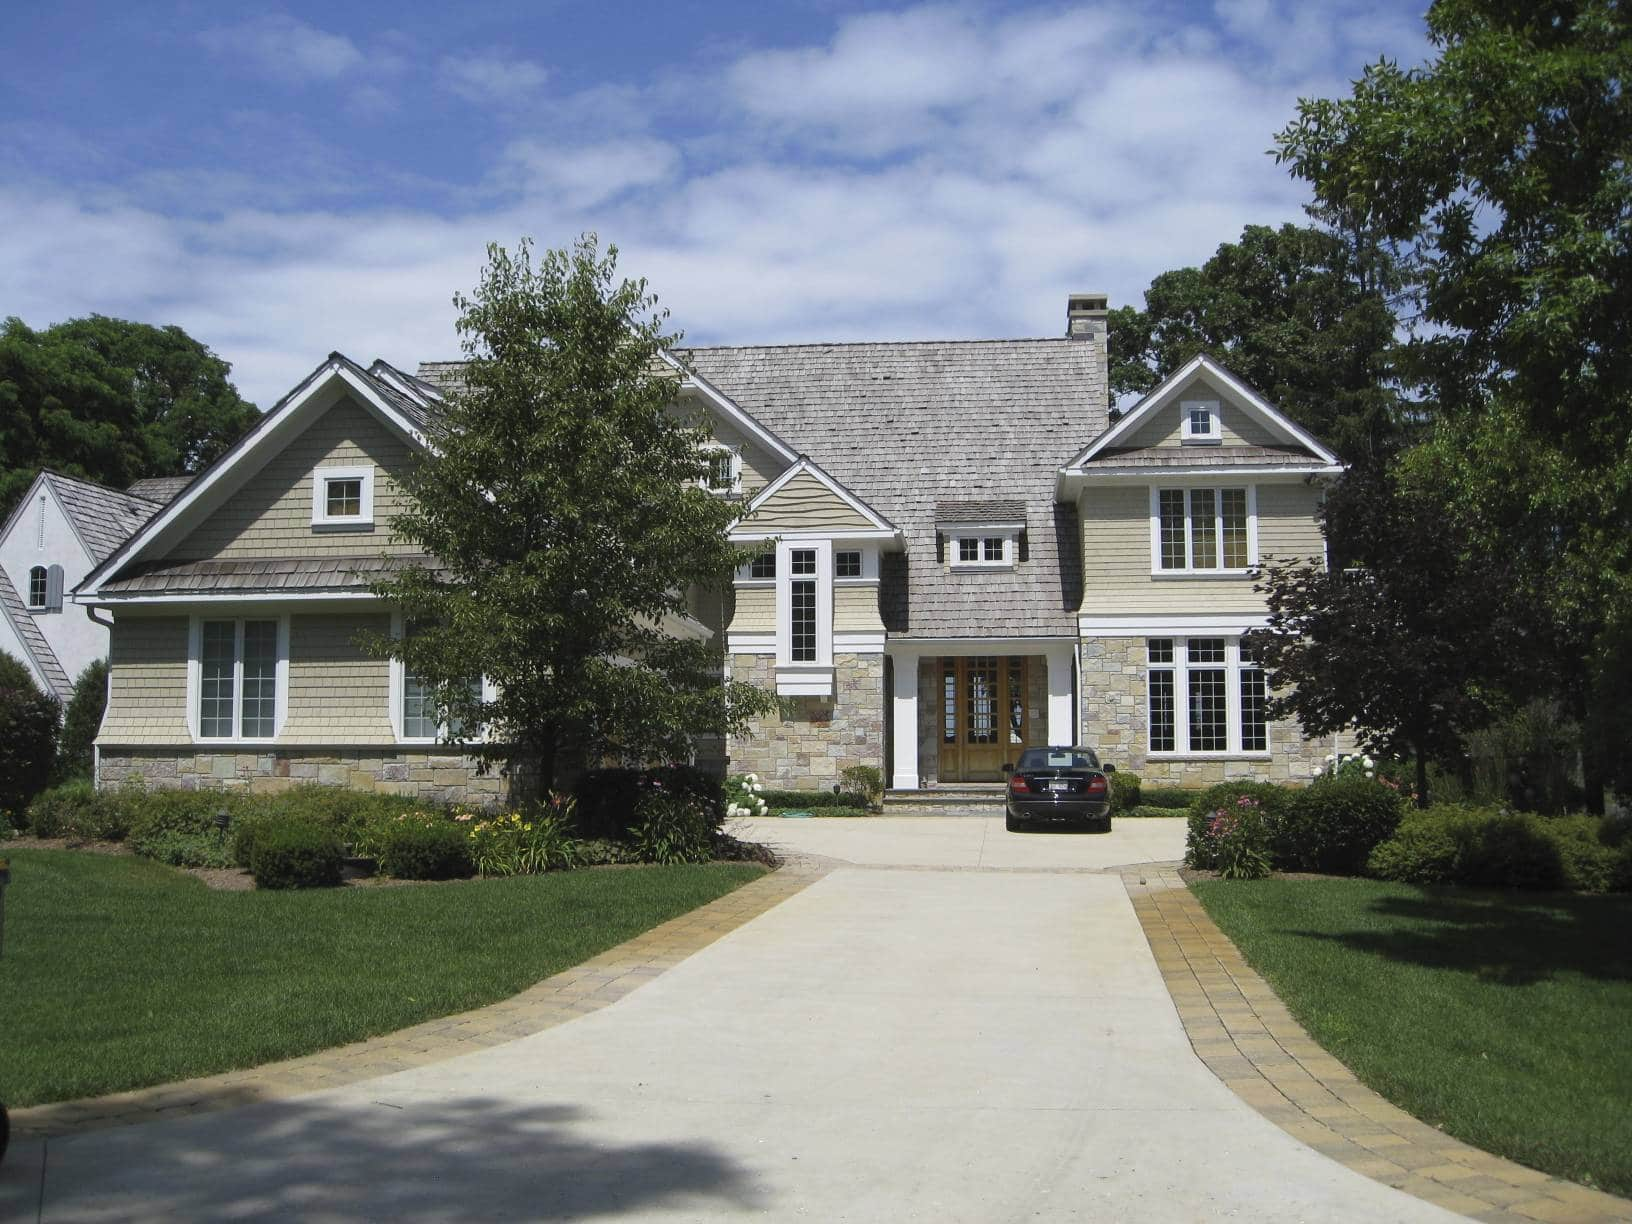 twin lakes house front view from drive